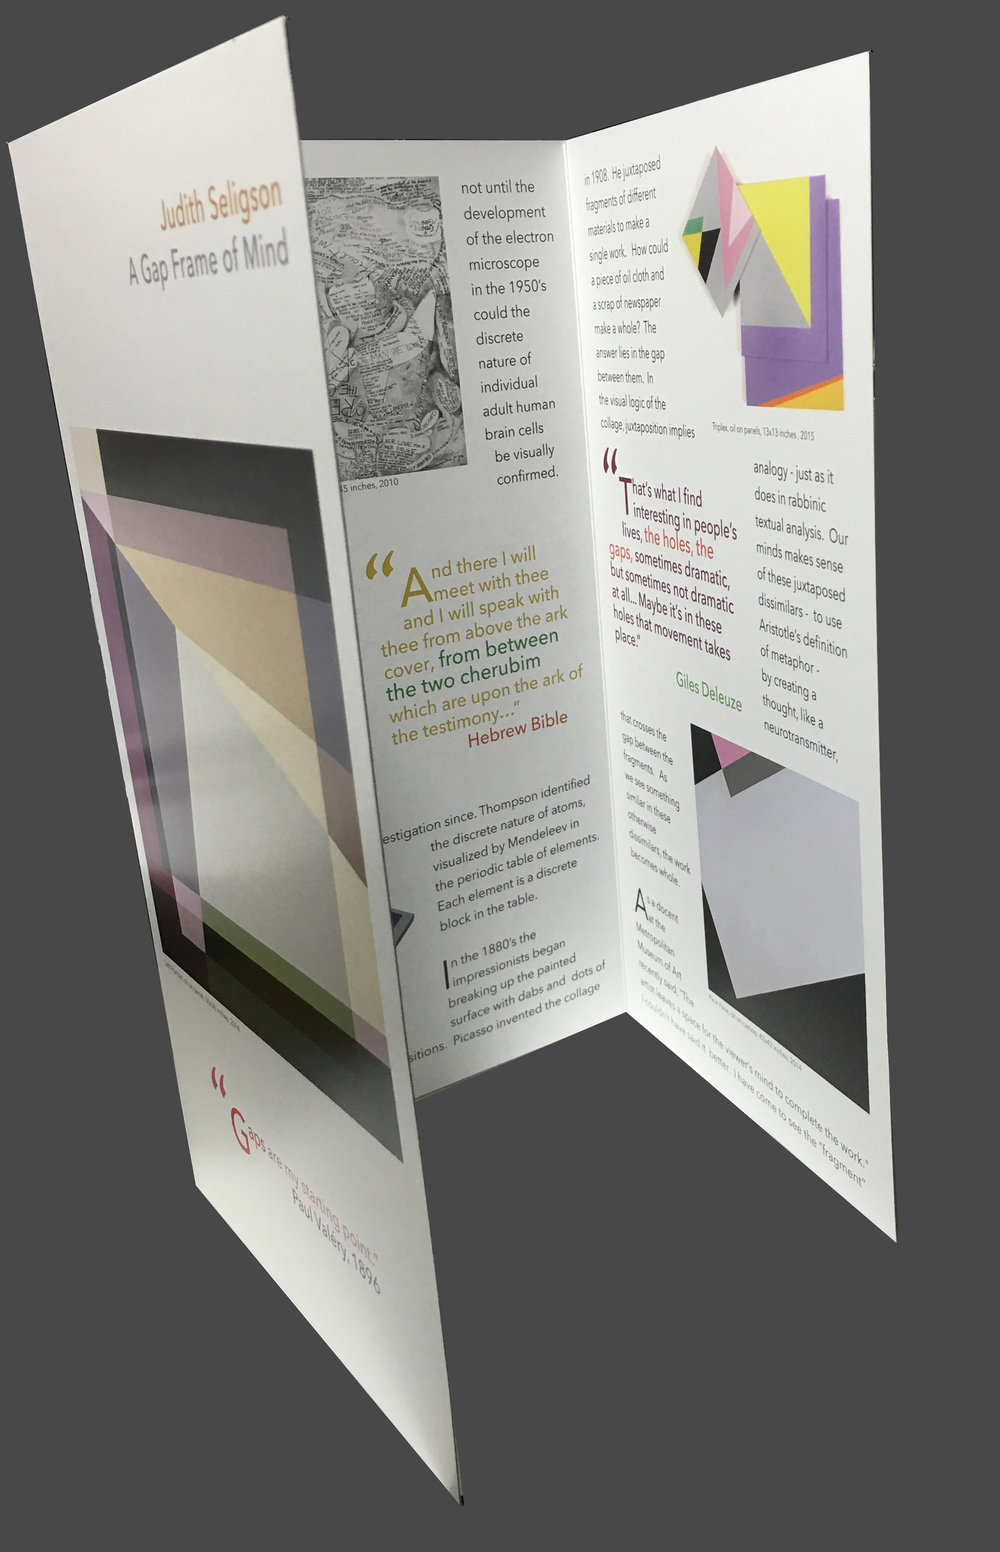 A GAP FRAME OF MIND  brochure (Click image to read). produced for my solo exhibition at the athenaeum in alexandria, va in 2016